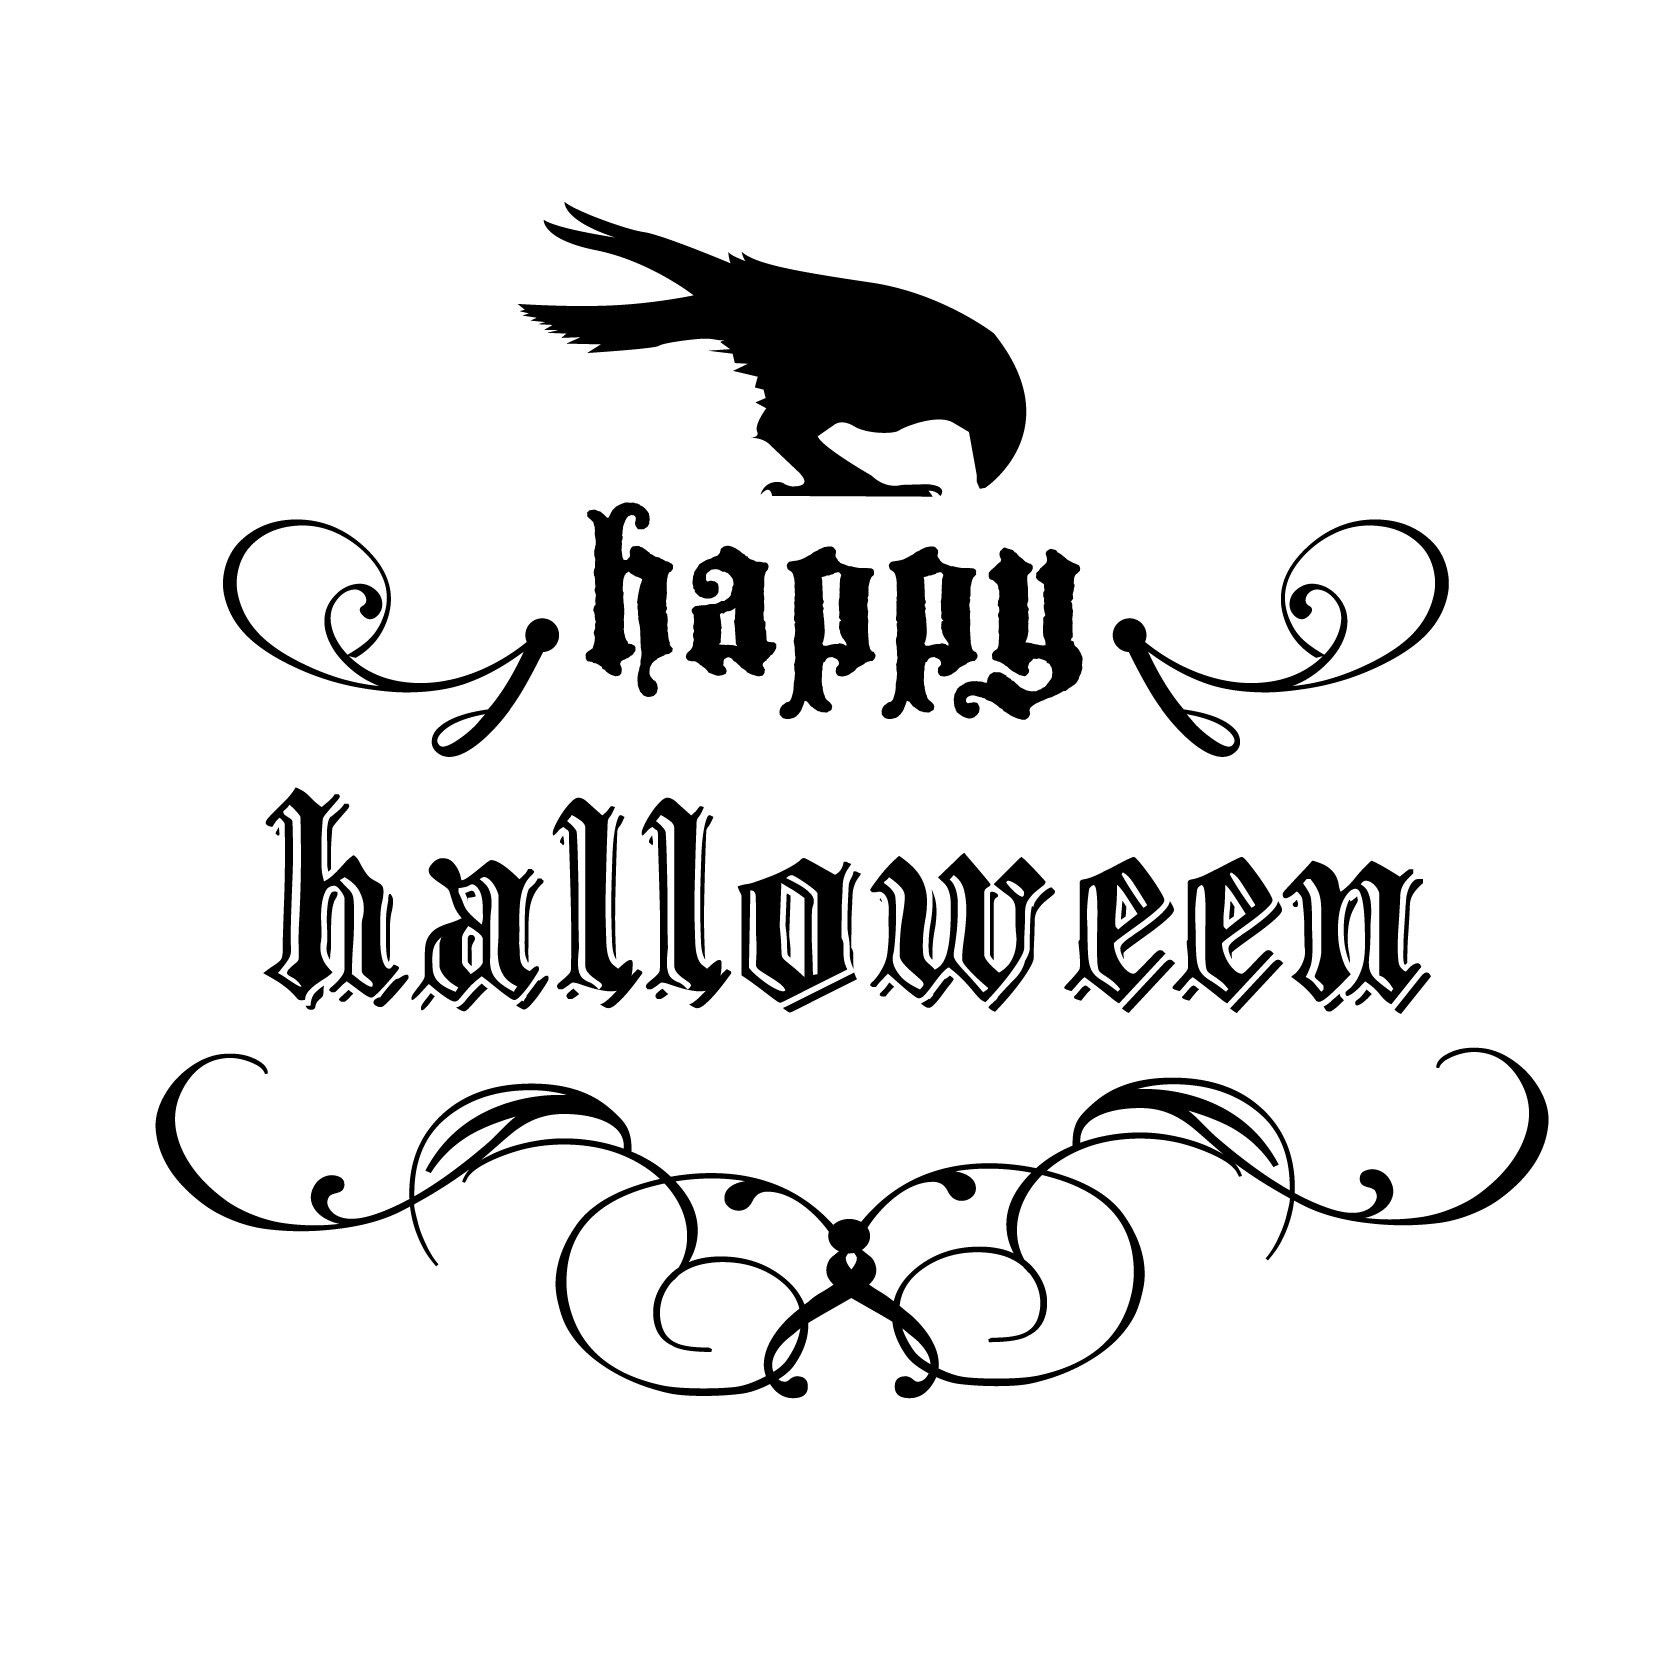 Elegant Happy Halloween Sign Gothic Swirls and Crow - Vinyl Wall Art Decal for Homes, Offices, Kids Rooms, Nurseries, Schools, High Schools, Colleges, Universities, Events